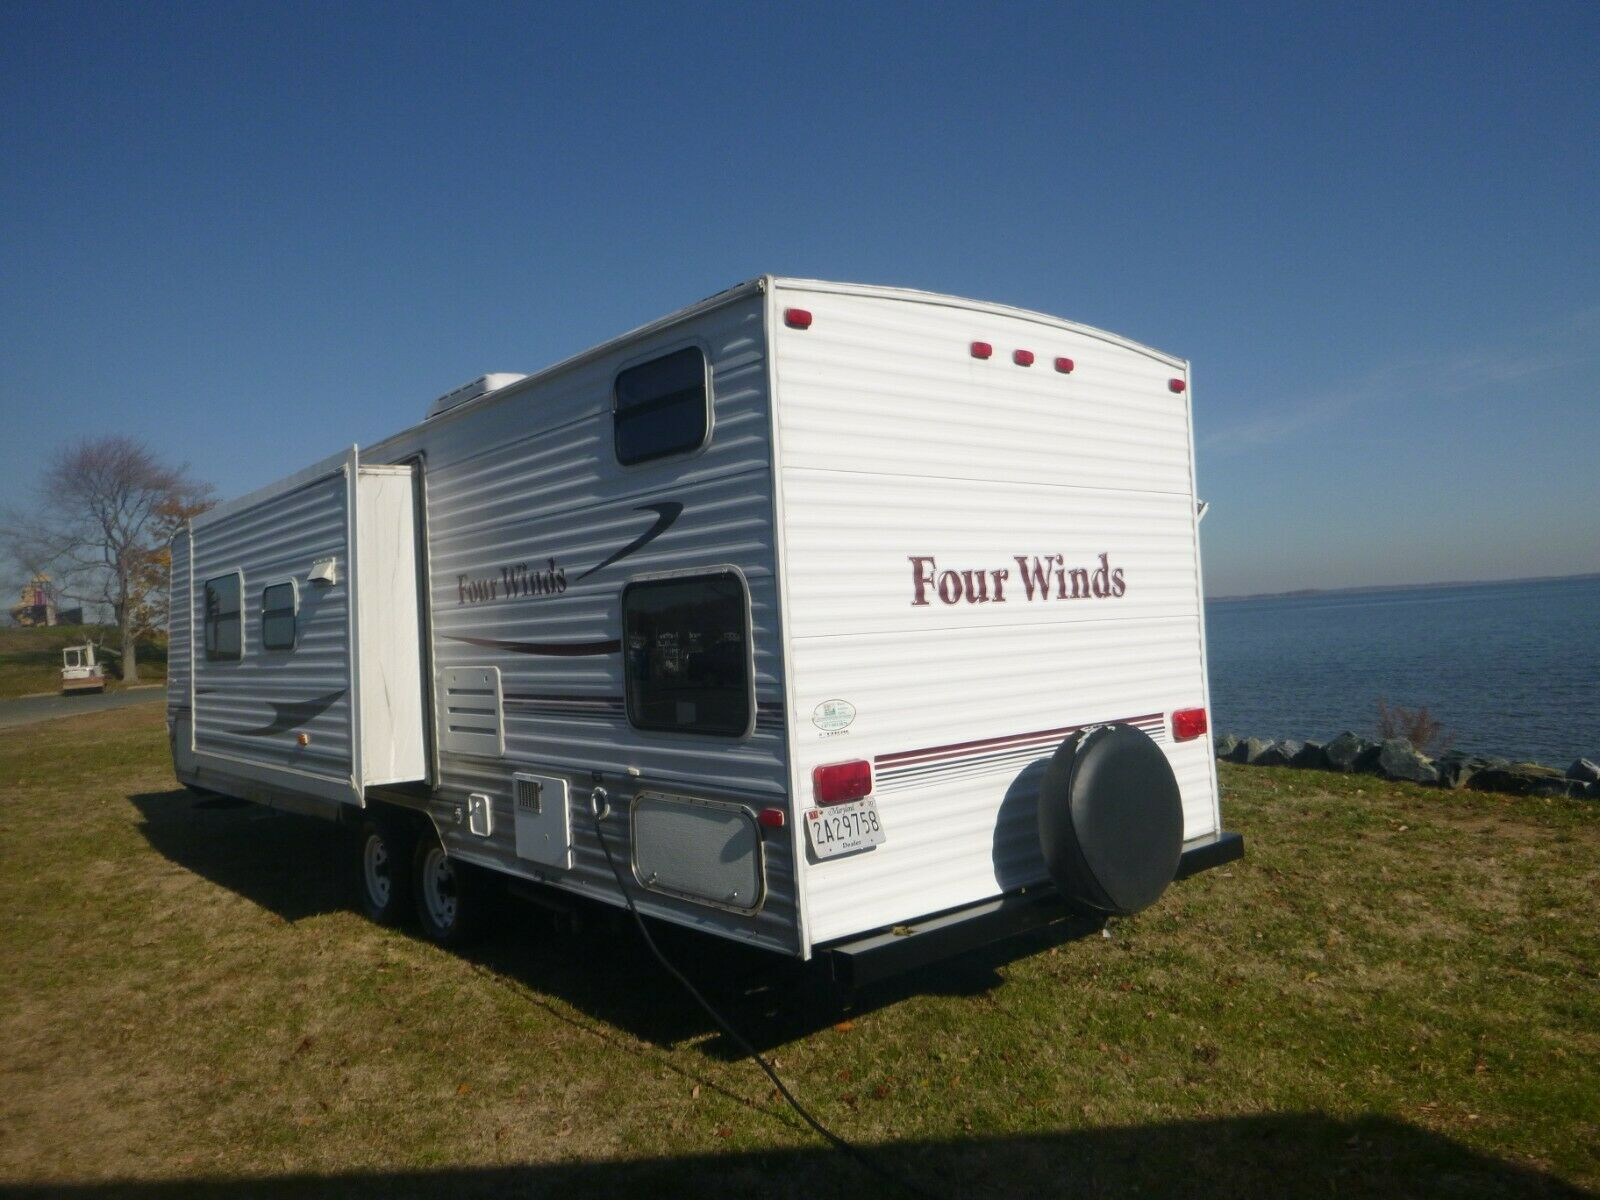 great looking 2007 Four Winds camper